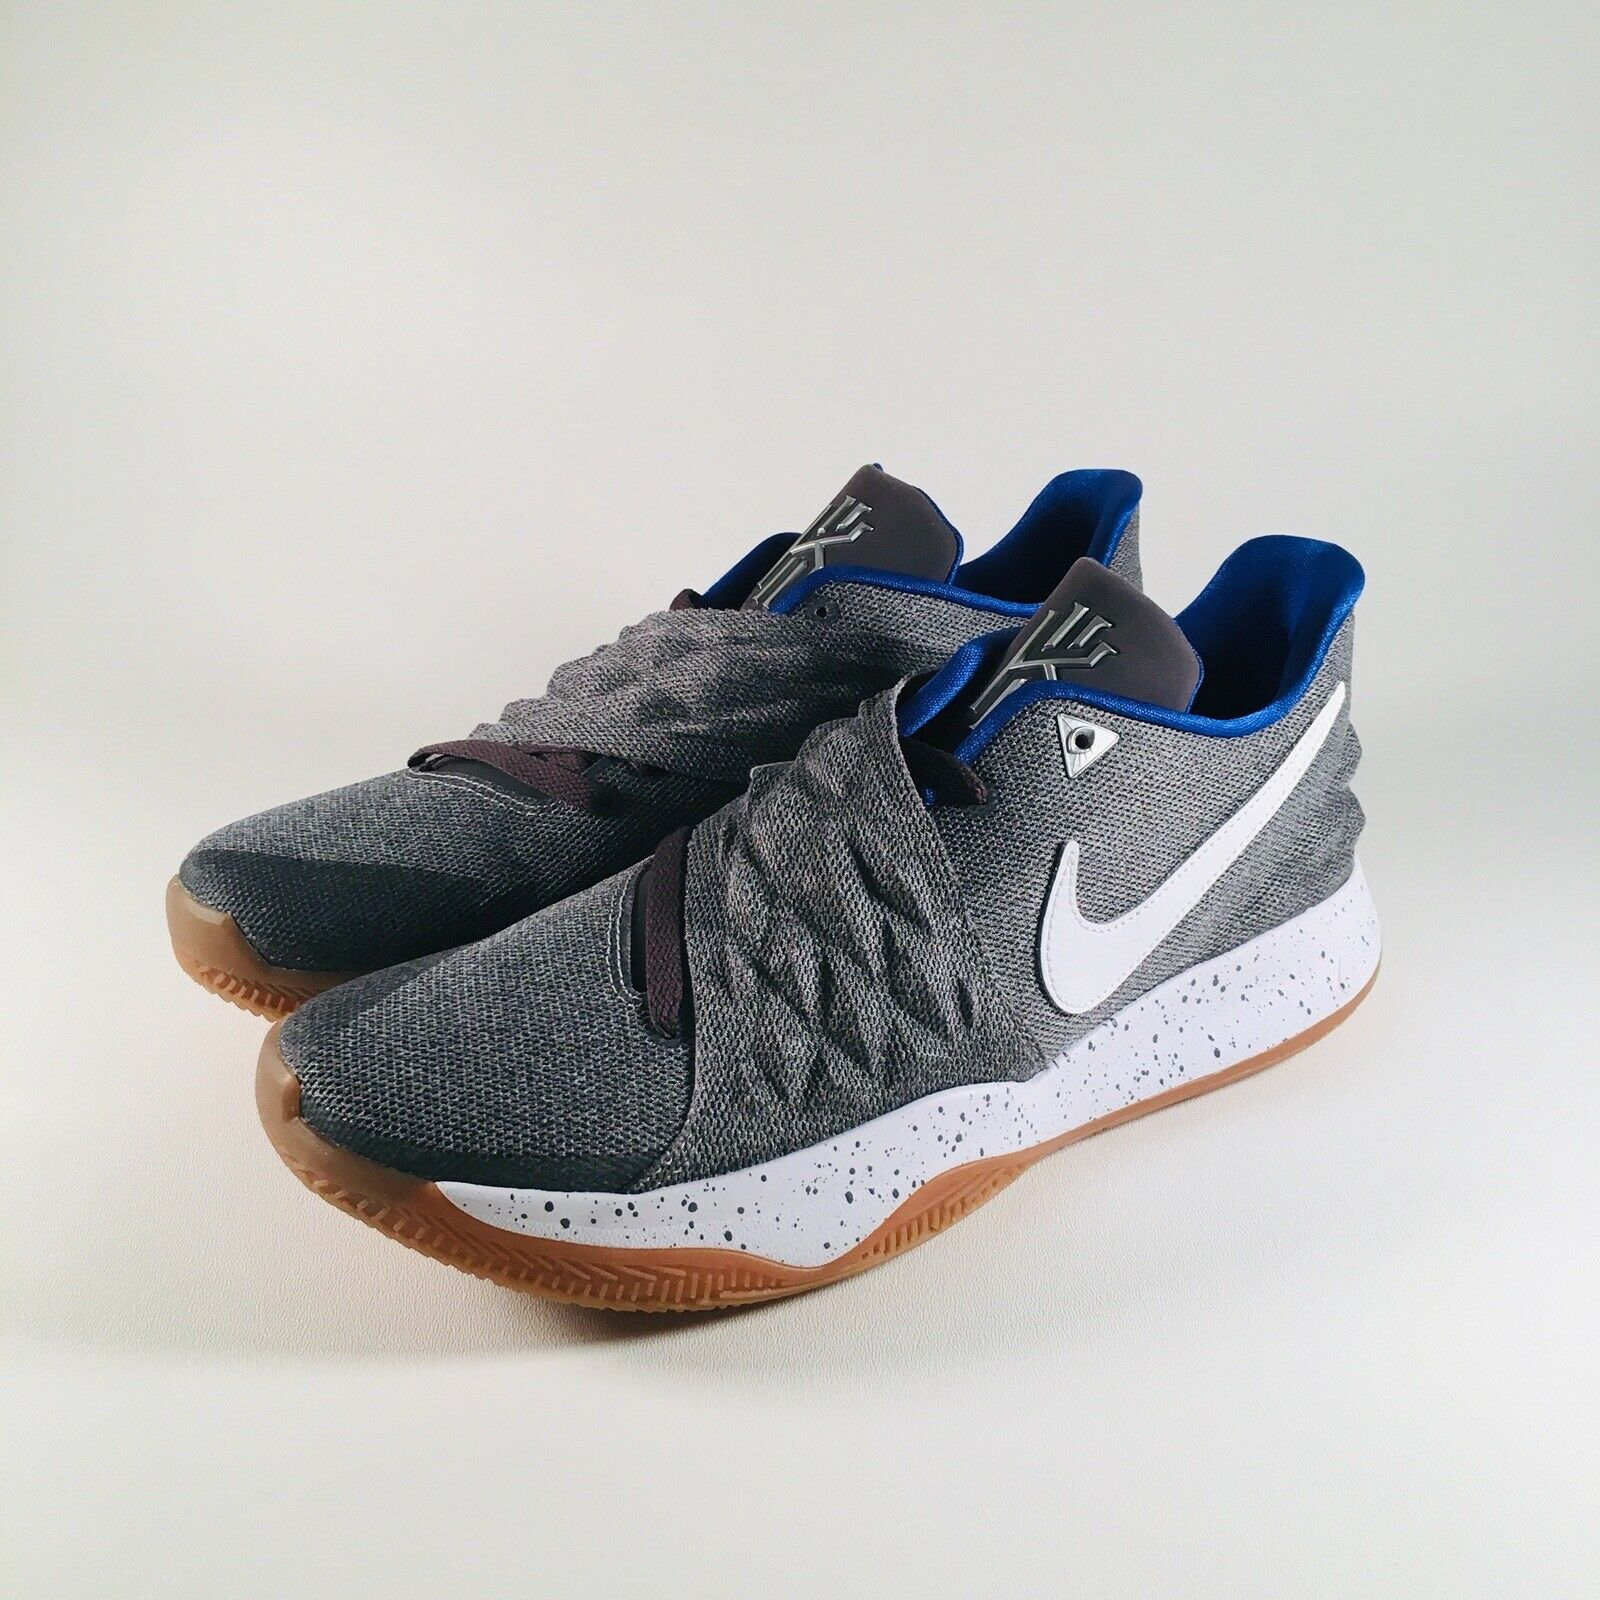 Nike Zoom Kyrie 1 Low Uncle Drew Grey   White   bluee   Gum [AO8979-005] Sz 12.5